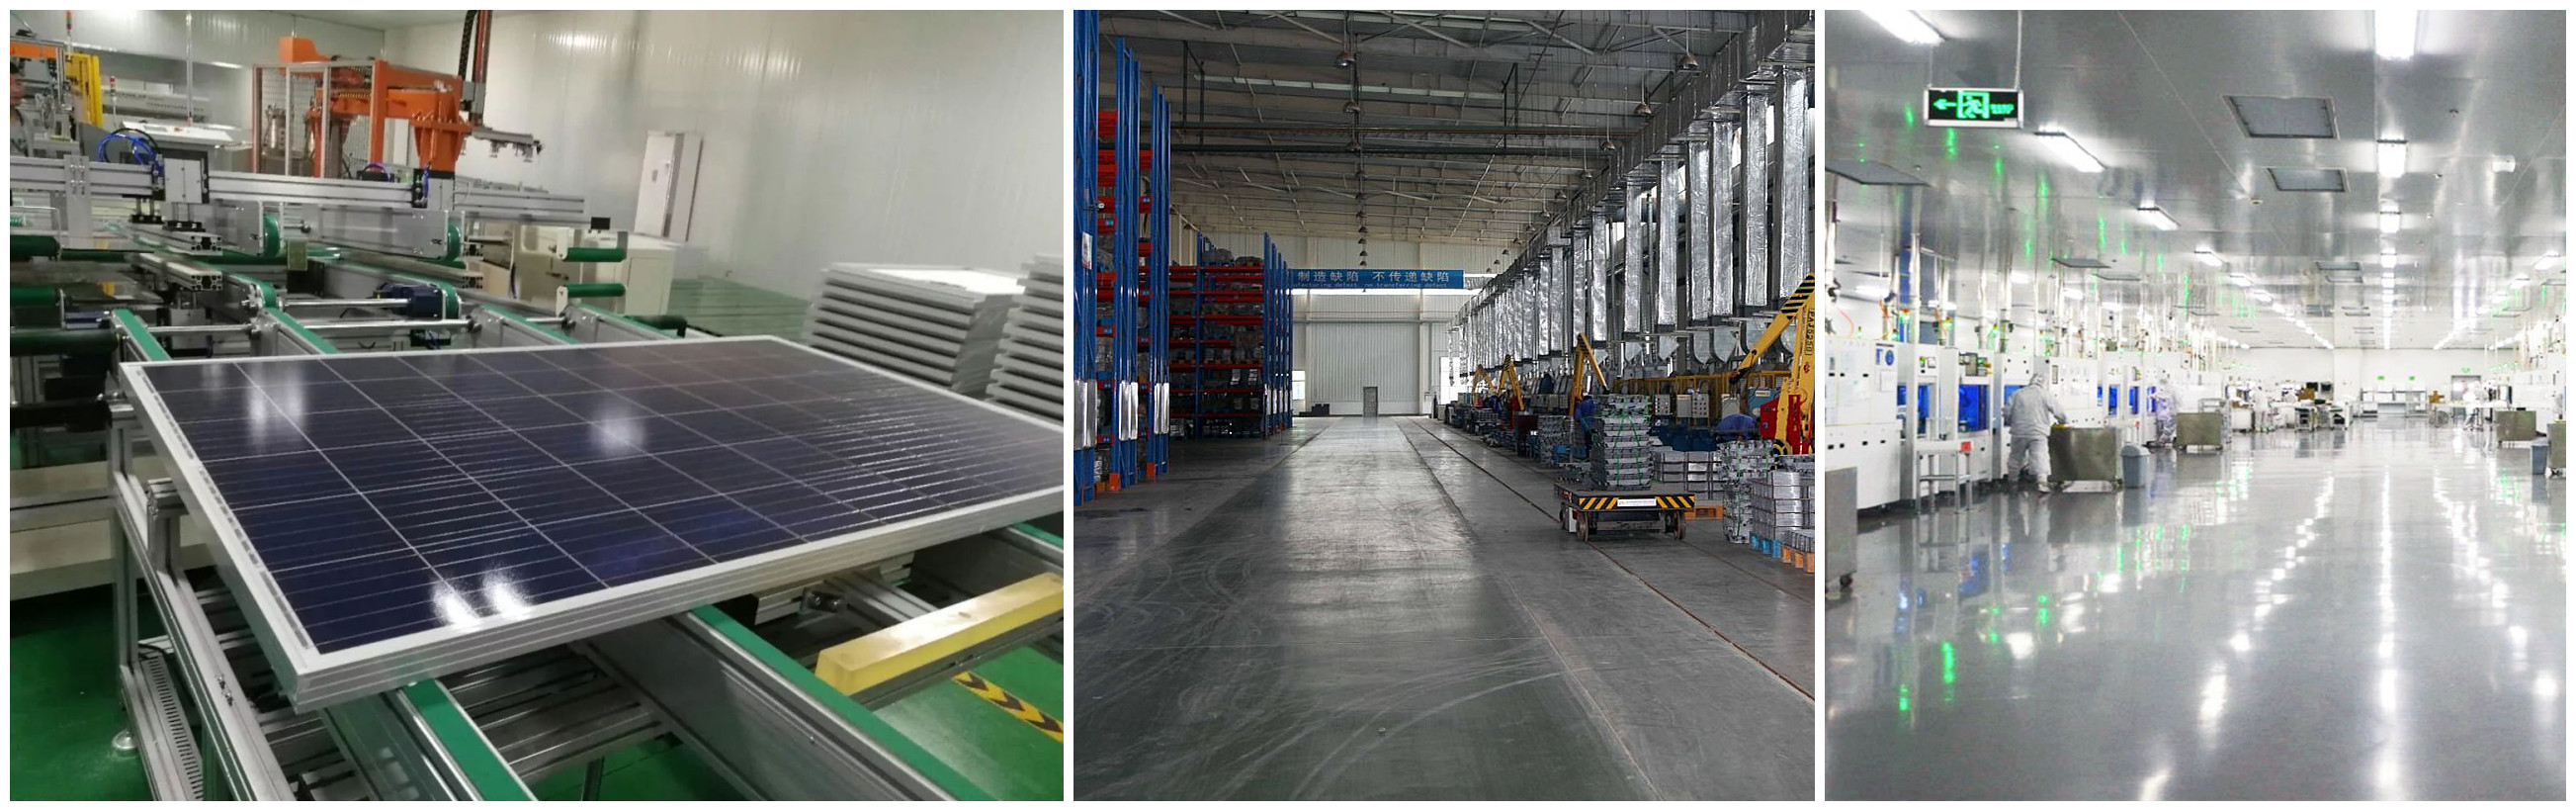 2018 Newest 300W solar module for solar panel  factory price